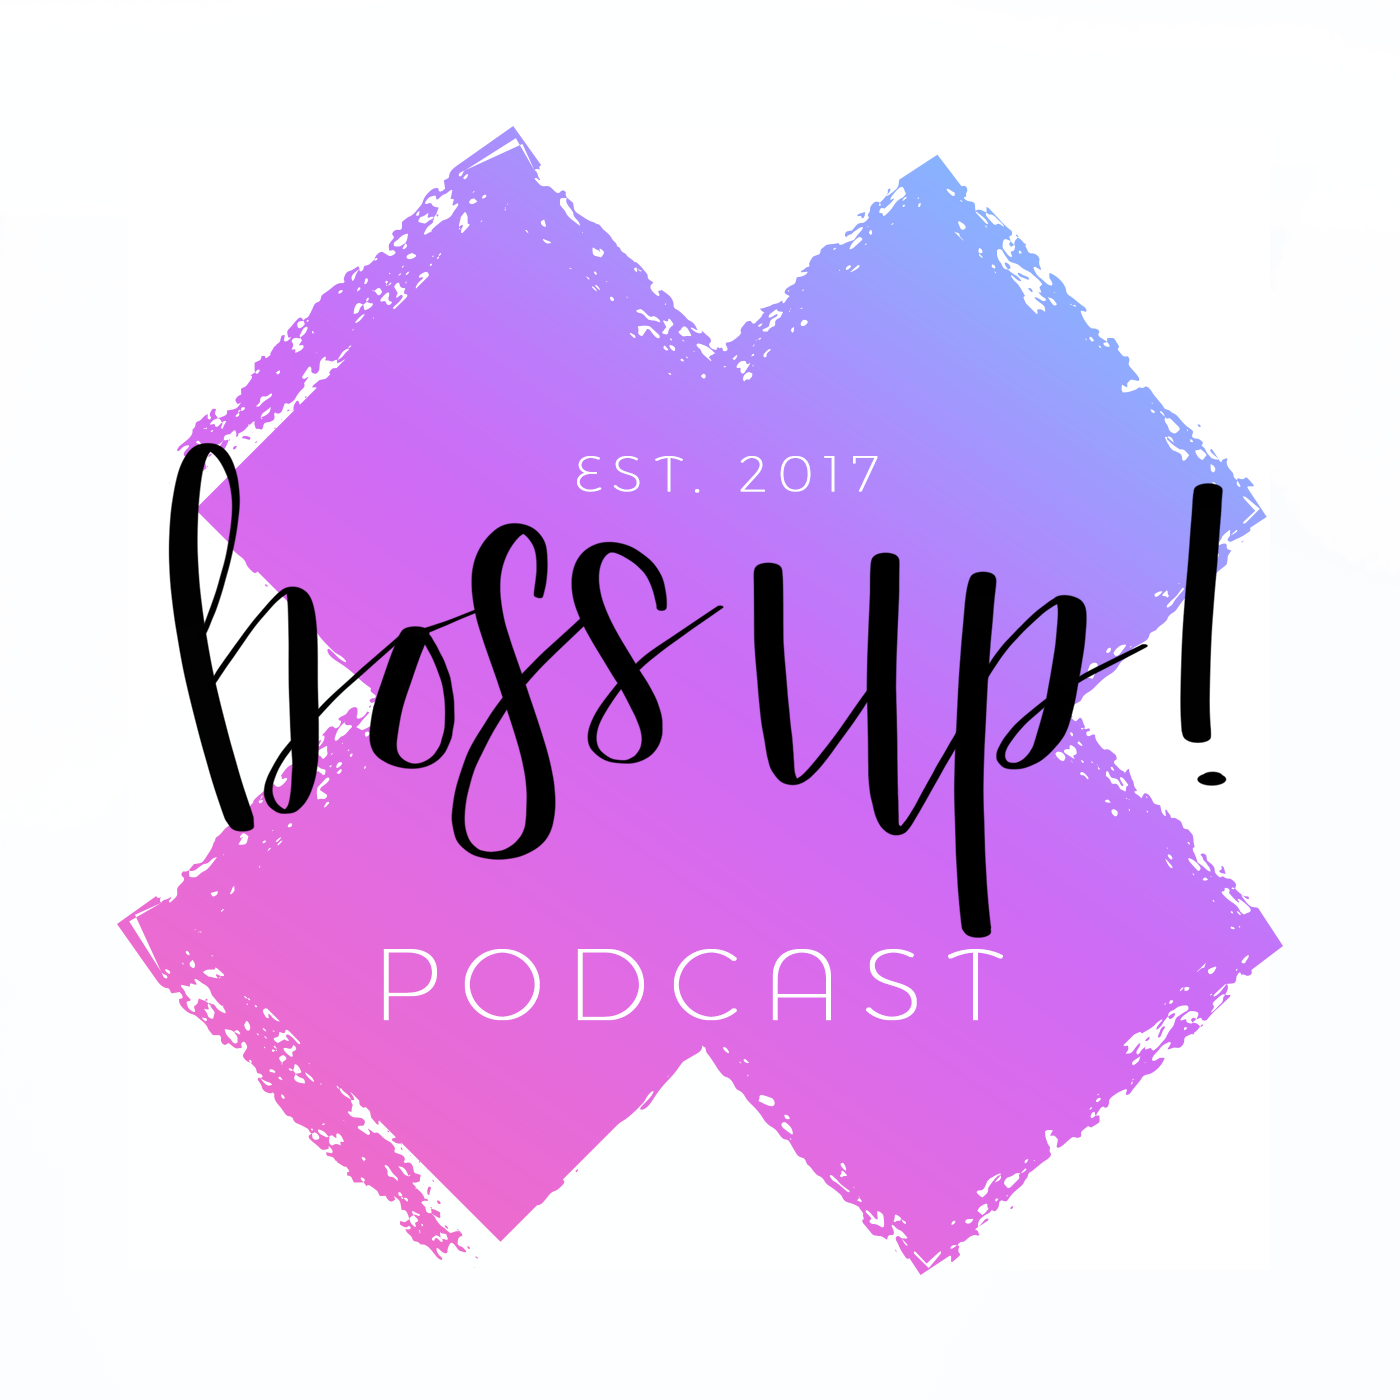 Boss Up! Podcast